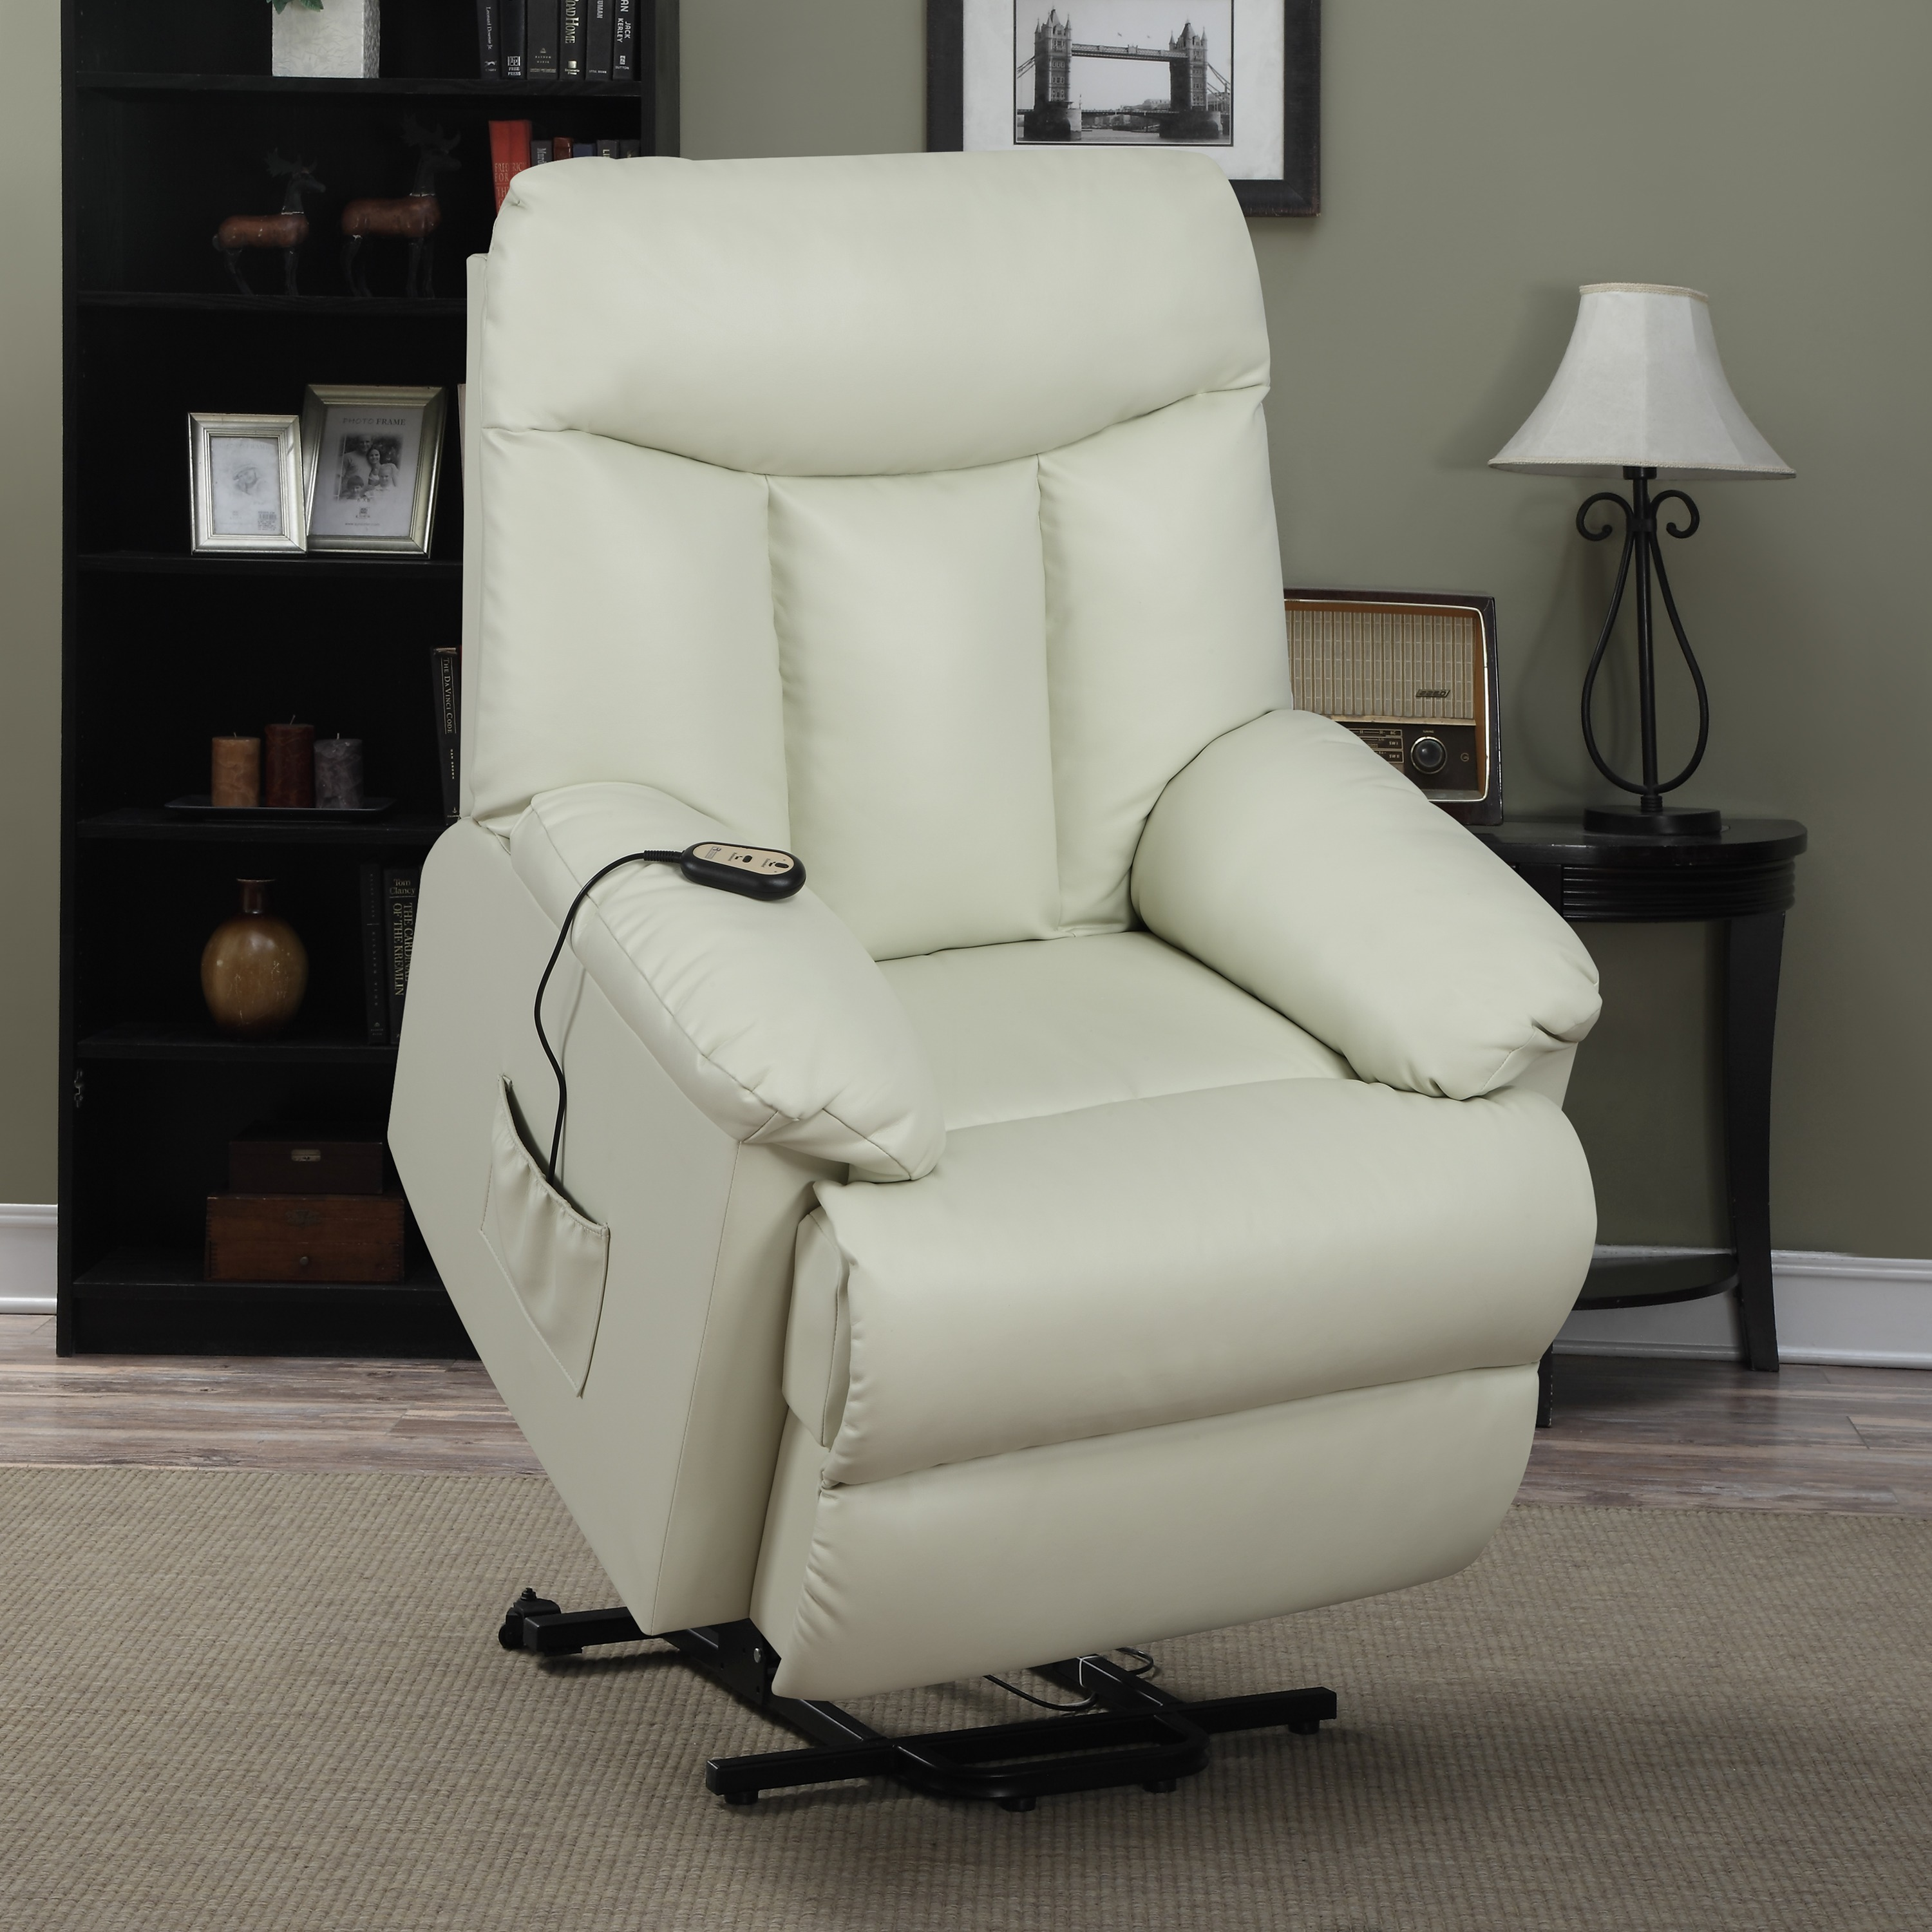 white power lift recliners on wheat carpet plus black tab;e with table standing lamp for living room decor ideas